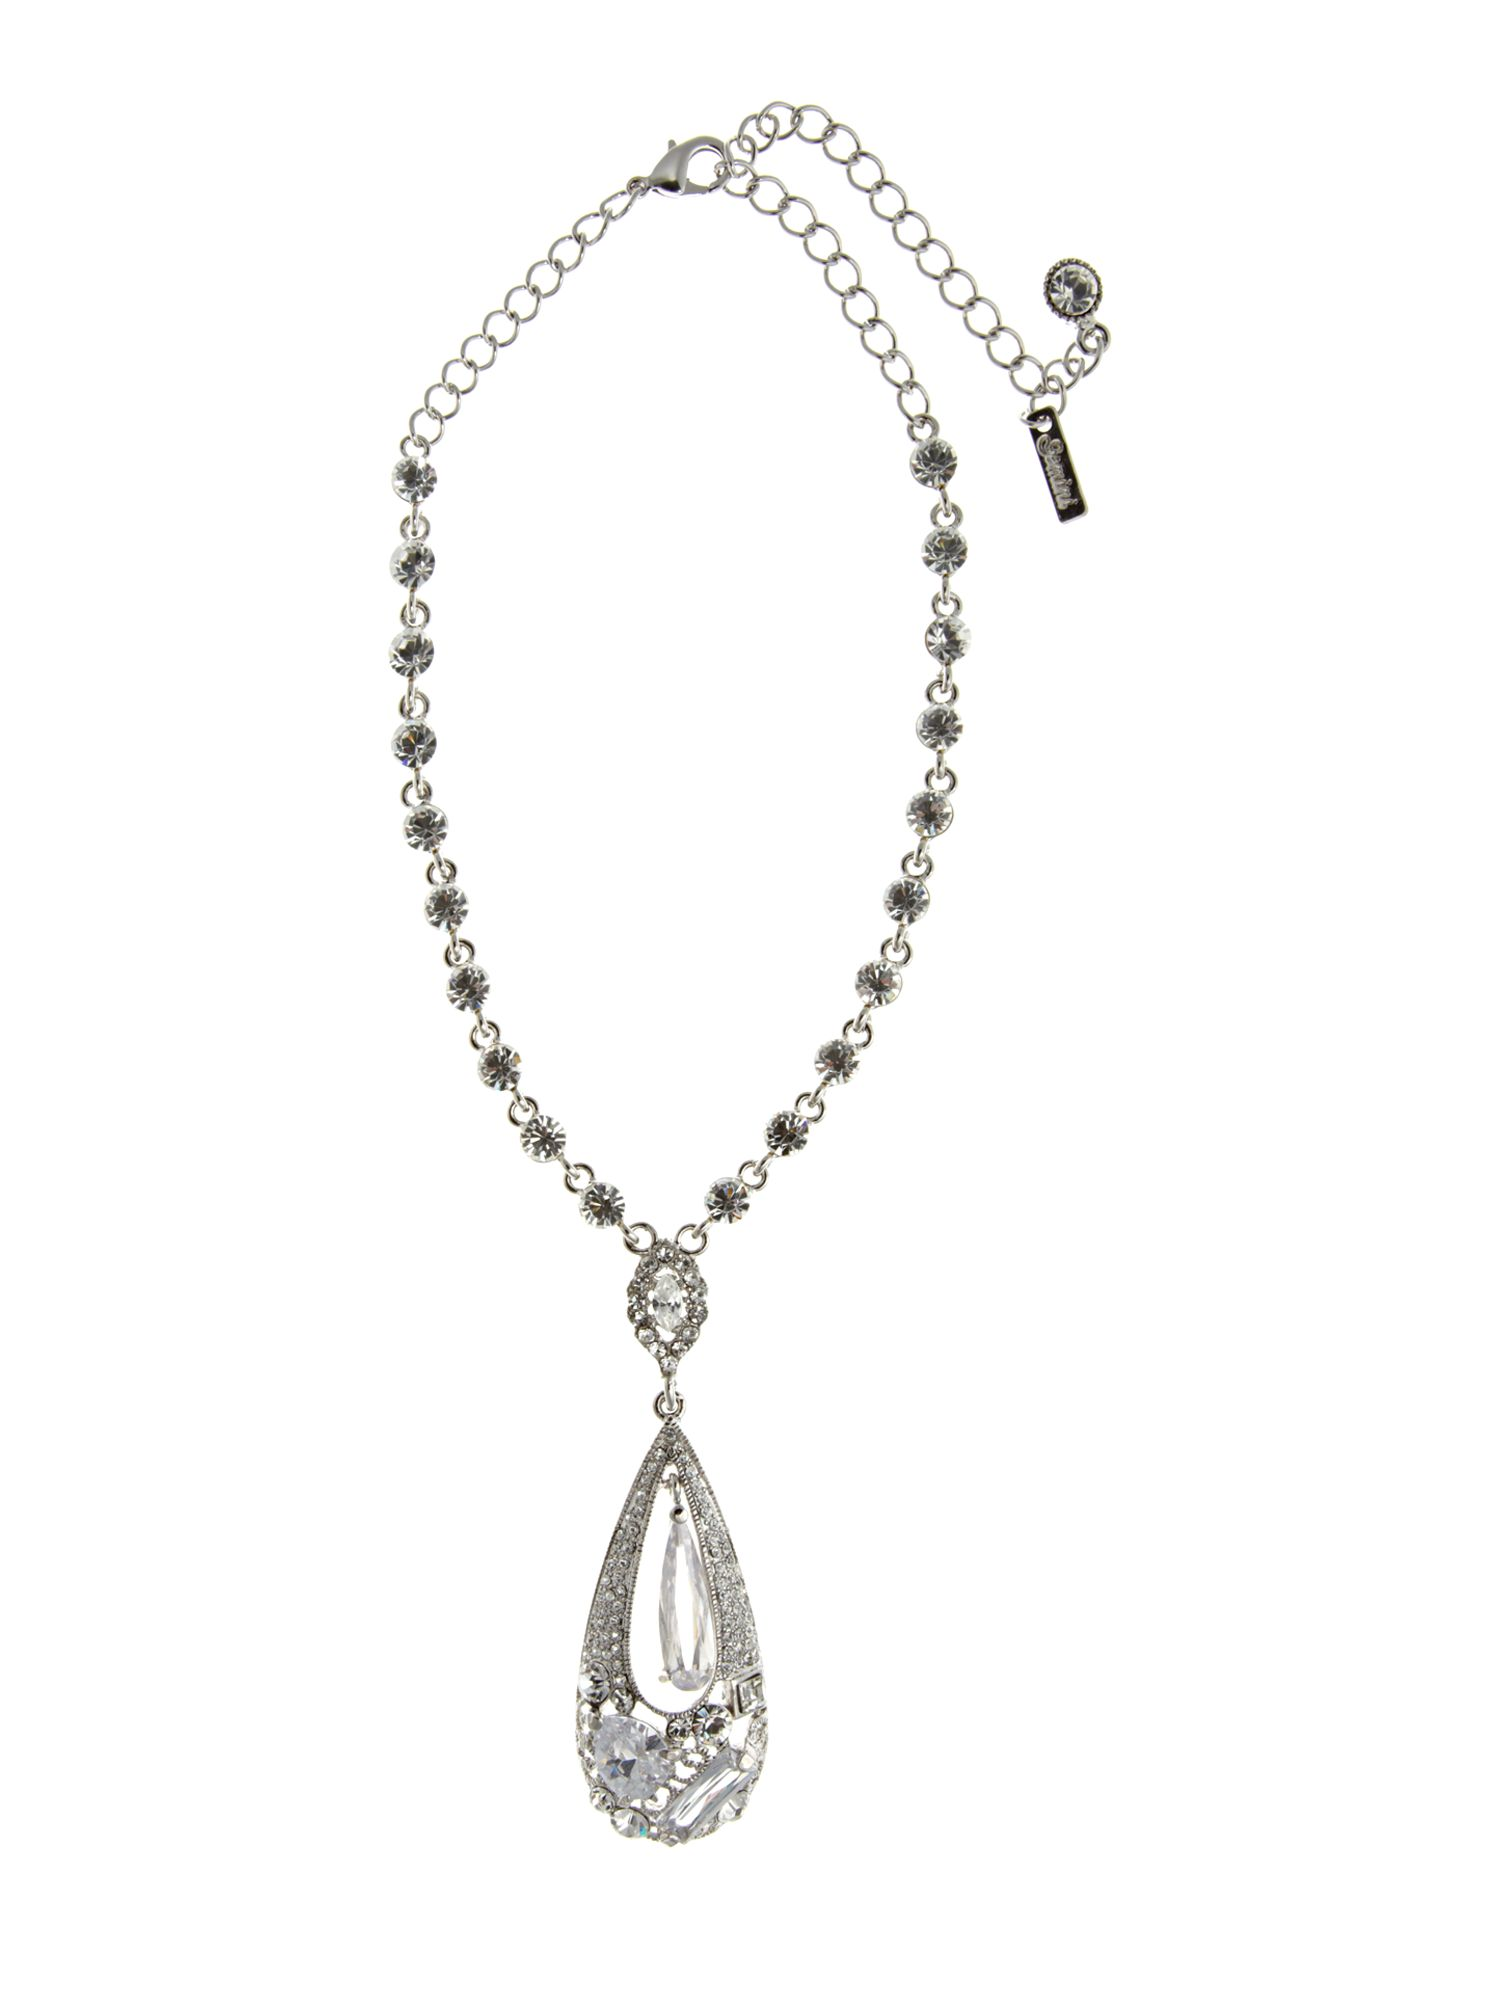 Gemini Crystal drop haute couture swarovski necklace